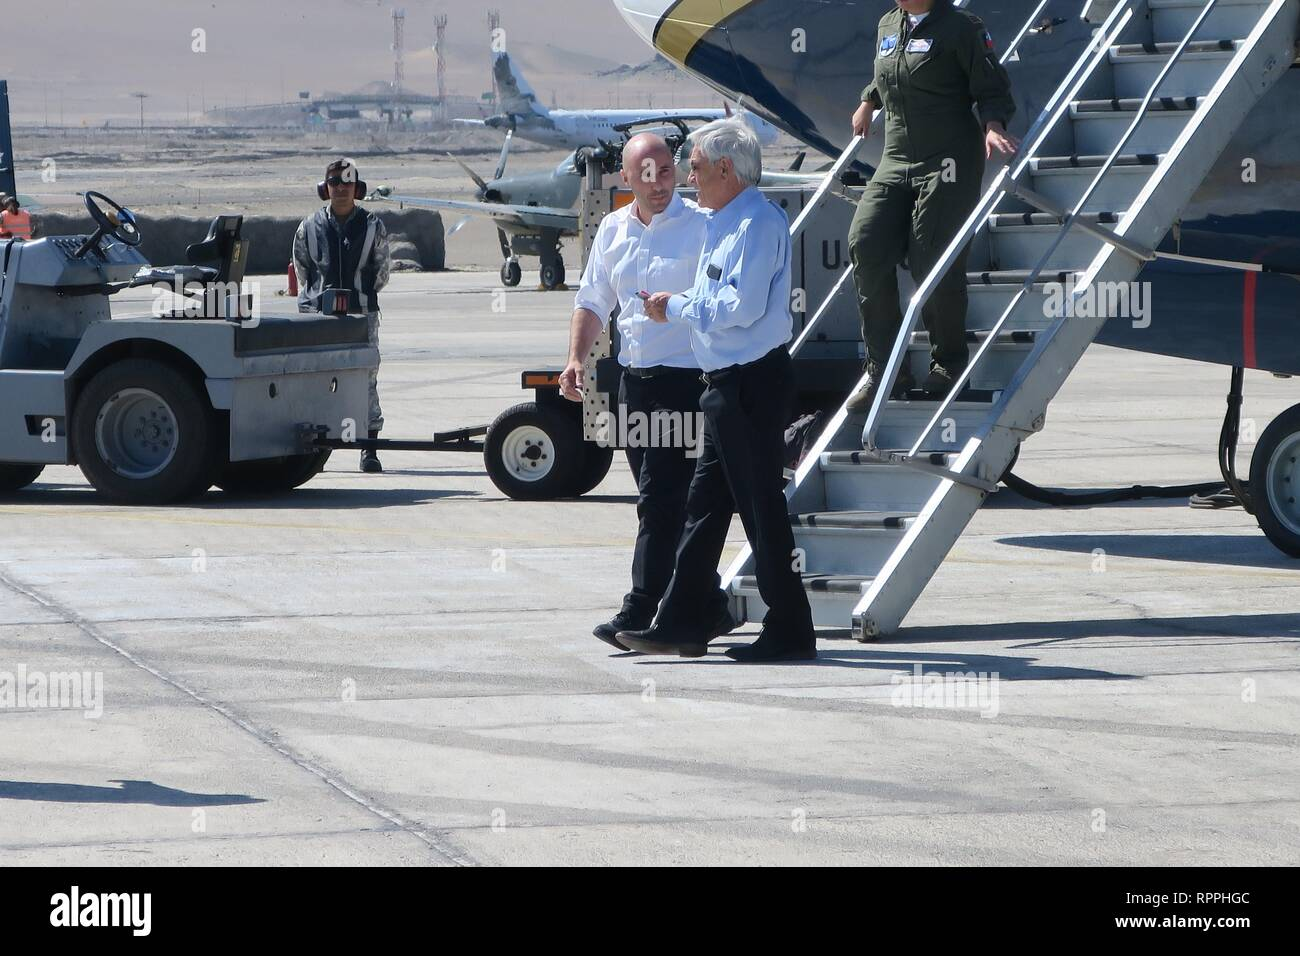 Chilean President Sebastian Pinera (R) prepares to get on the G-IV plane of the Chilean Air Force to continue his trip to Cucuta (Colombia), in Iquique, Chile, 22 February 2019. Pinera was forced to change planes this Friday in the middle of his trip to the Colombian city of Cucuta due to a failure in the presidential aircraft. The Chilean leader departed from Santiago to border the Boeing 737 of the Air Force, the smallest of the two that he usually uses on his trips, to the city of Iquique, where the aircraft would load fuel to continue his route to Cucuta, where he will attend the concert V - Stock Image